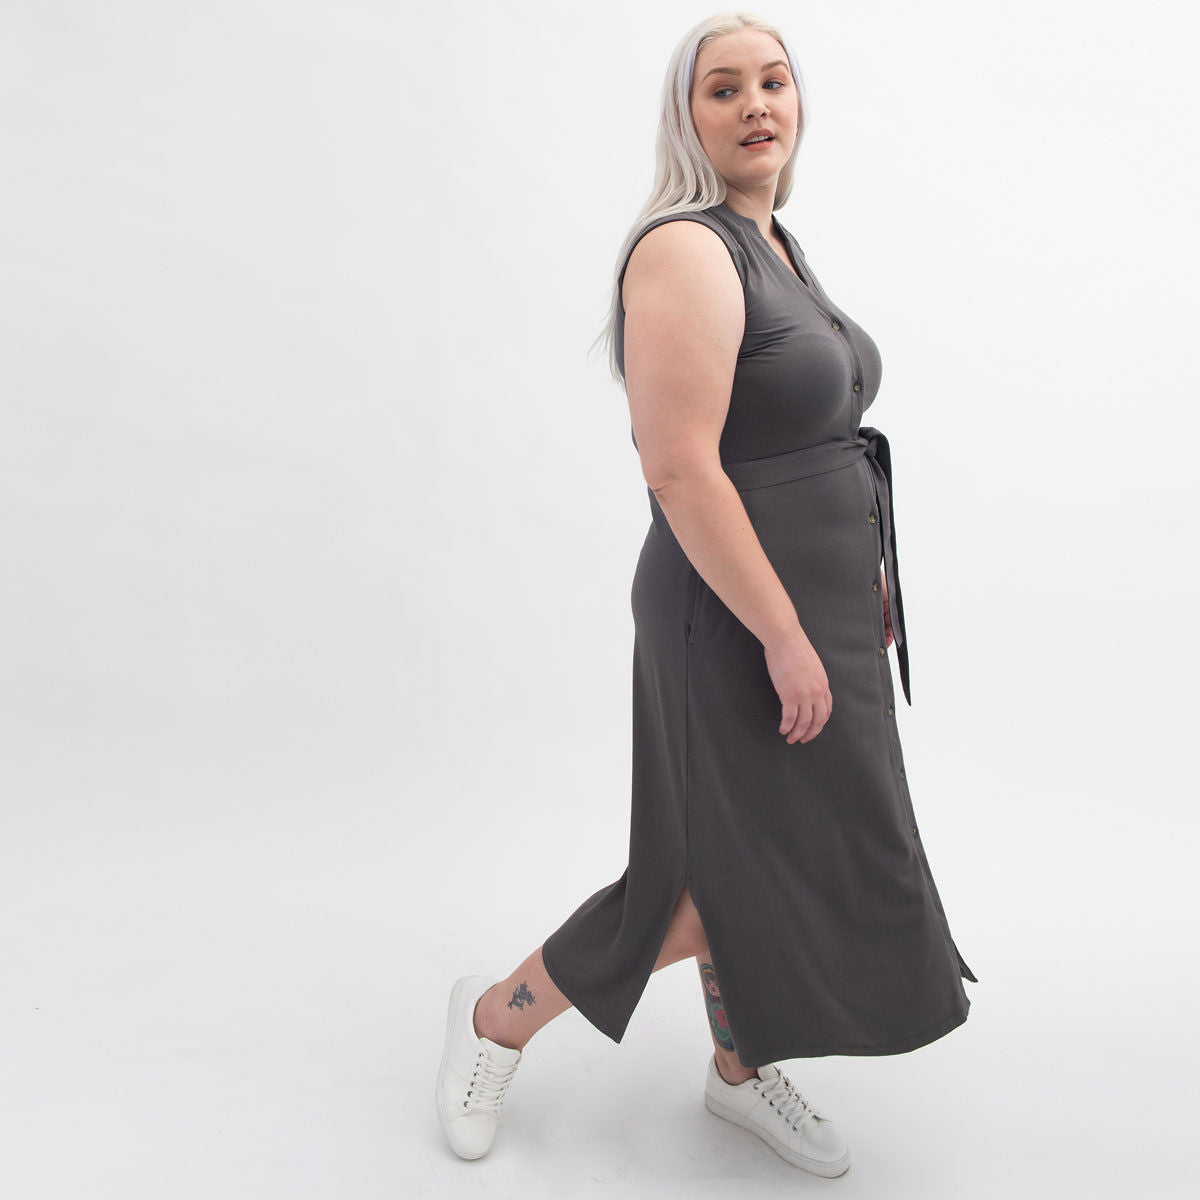 Charcoal dress with white sneakers